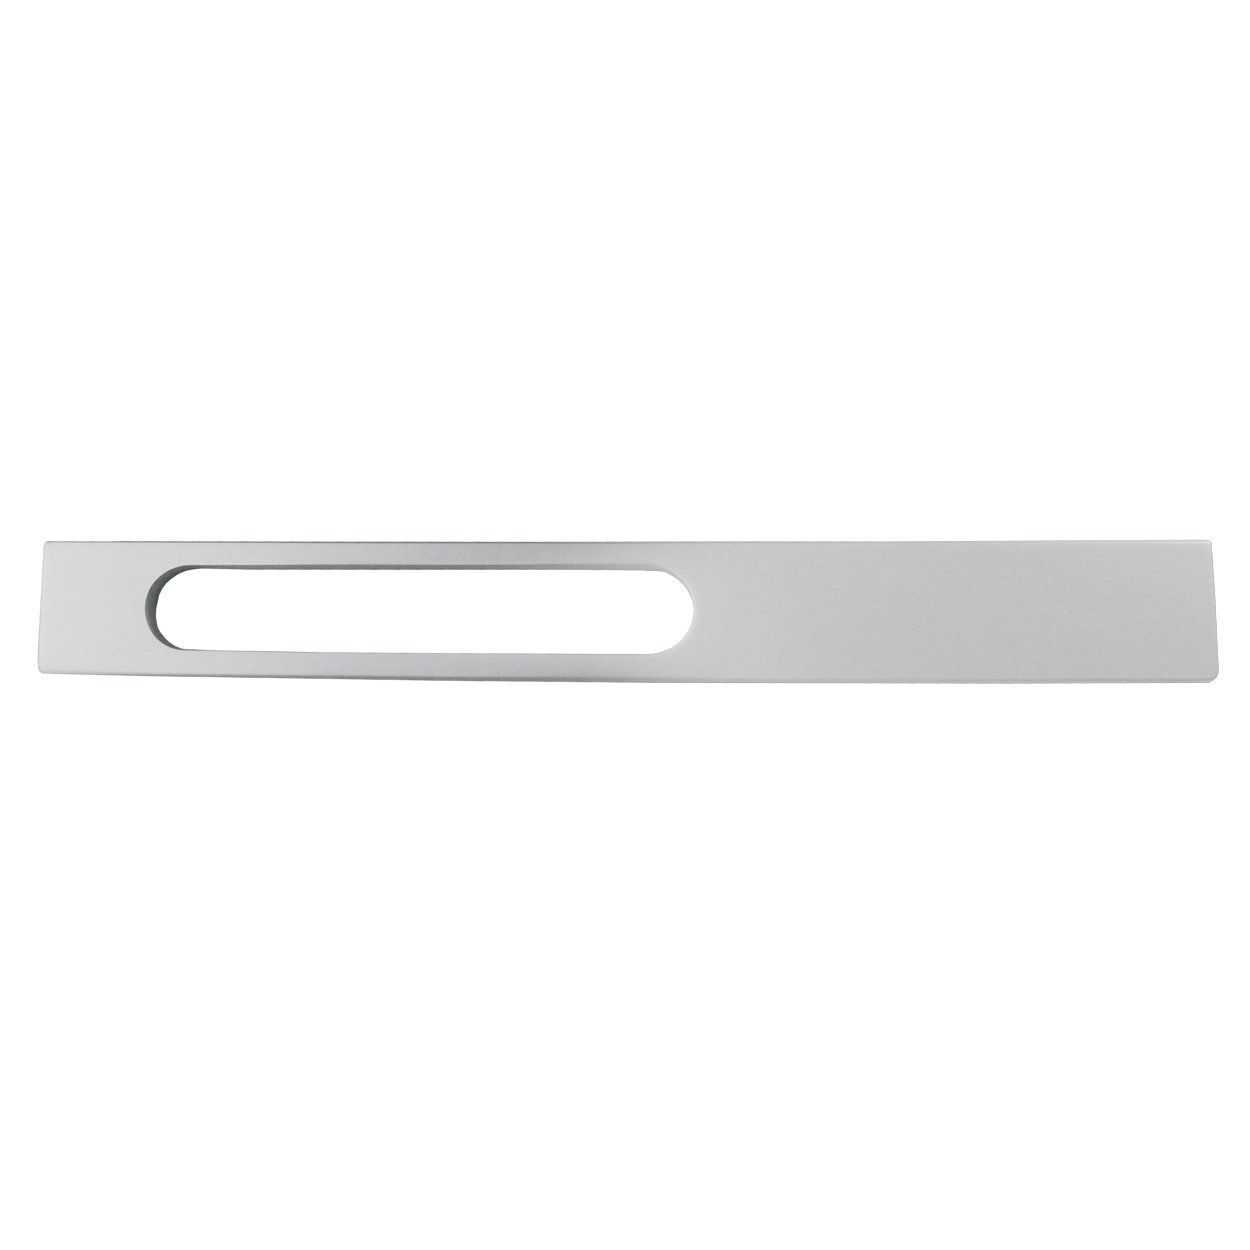 jako hardware hardware knobs cabinet pulls furniture. Shop Jako Design Hardware EM139 Nigeria Cabinet Handle At ATG Stores. Browse Our Pulls Knobs Furniture